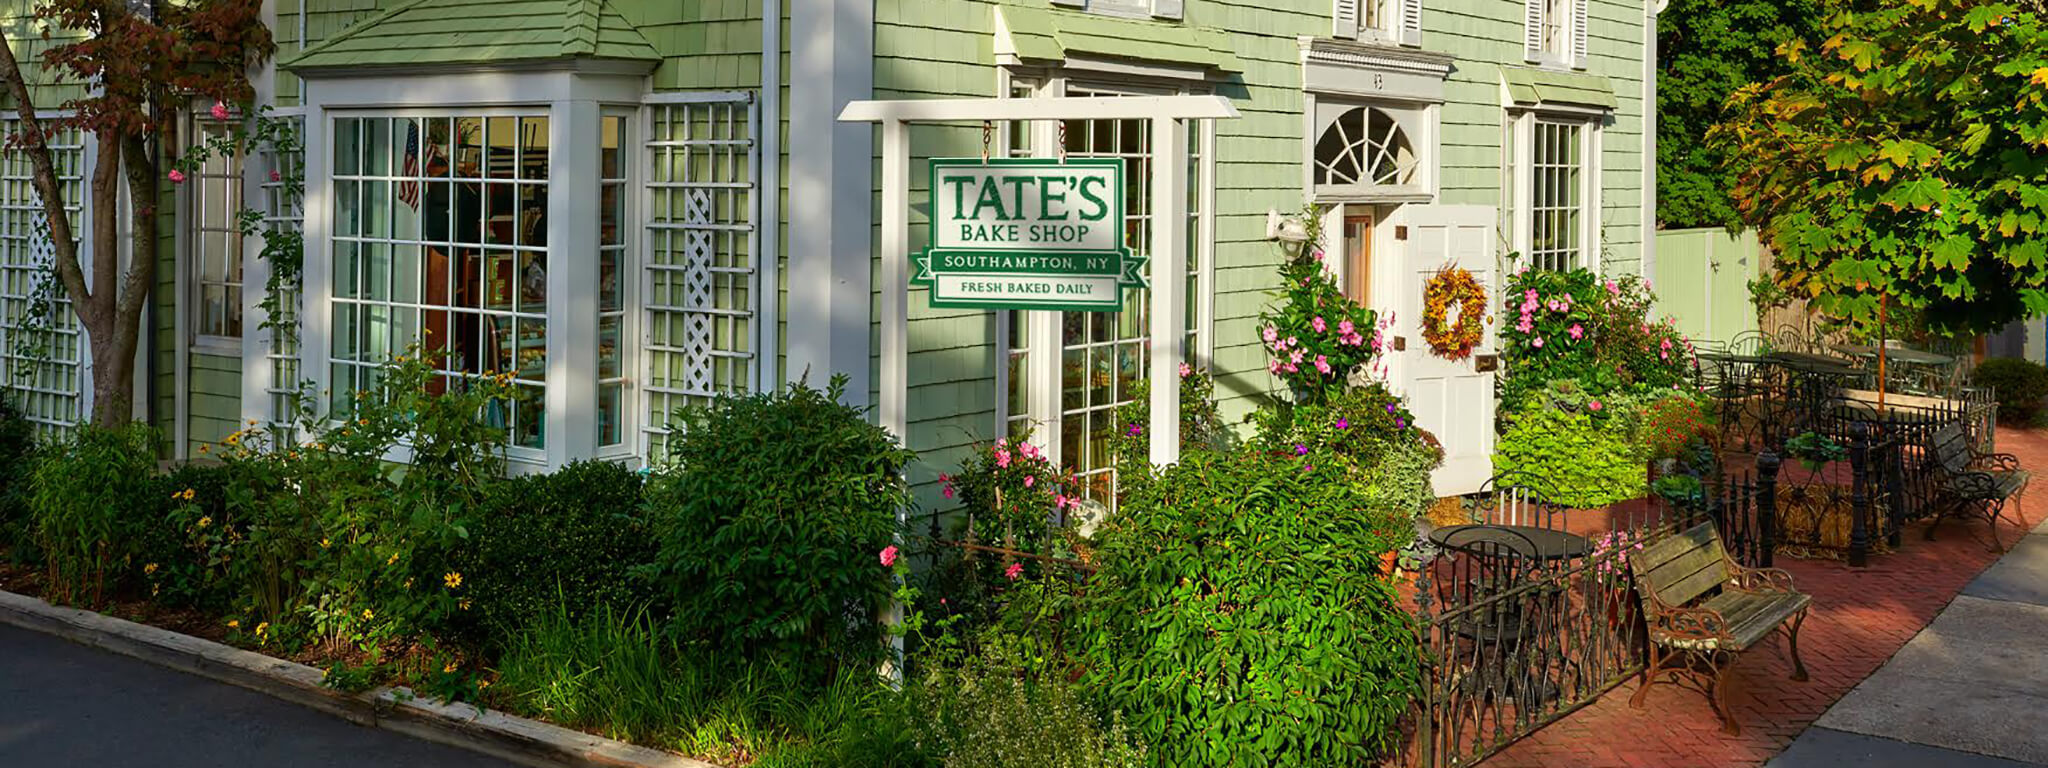 Tate's Bake Shop in sunshine with garden